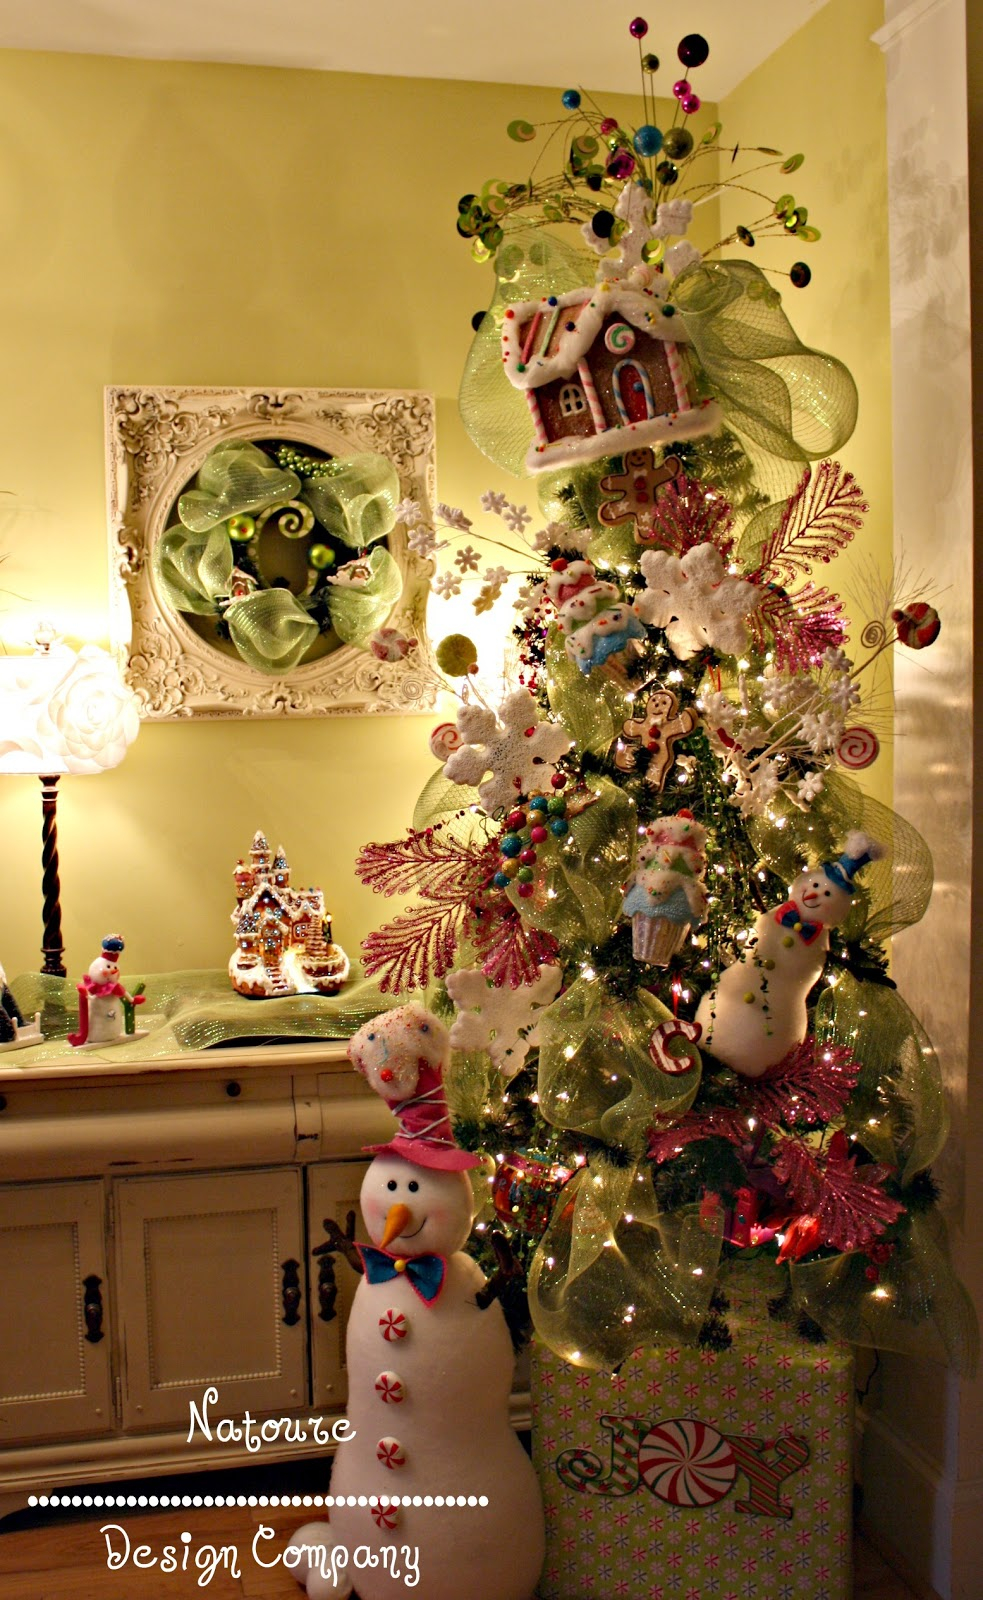 the INSPIRED creative ONE: Christmas Trees!!!